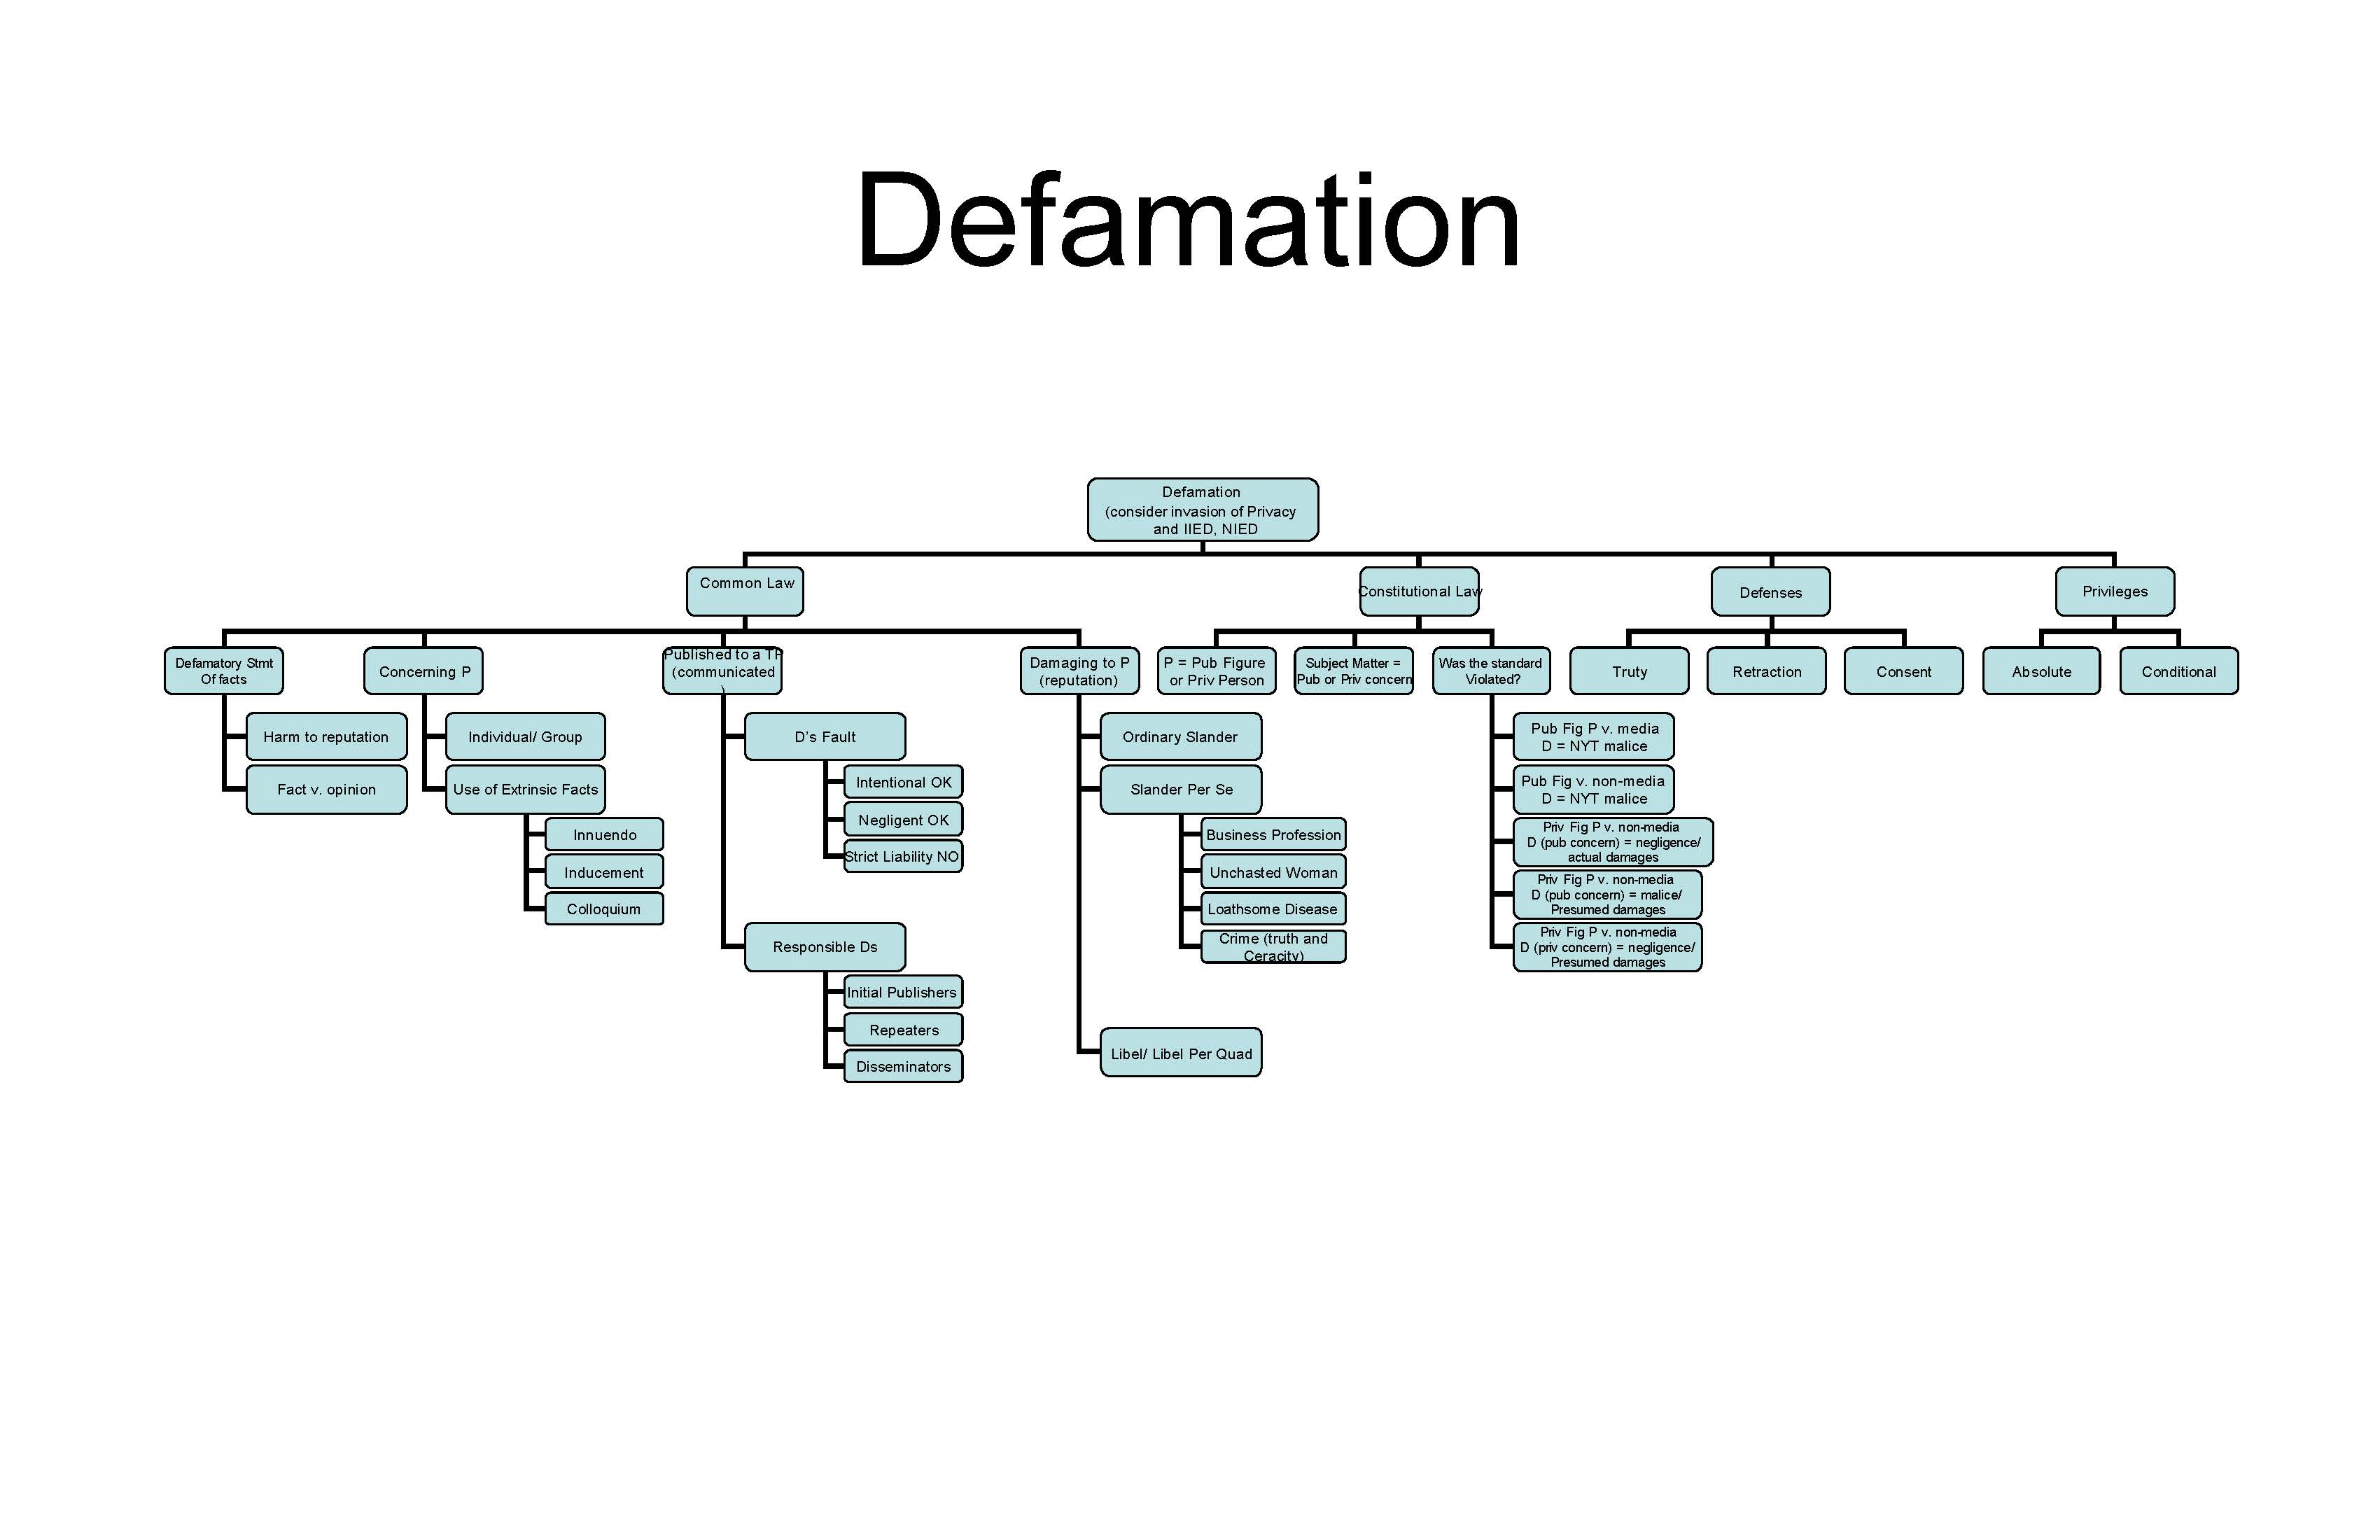 Defamation Comprehensive Review Chart.jpg